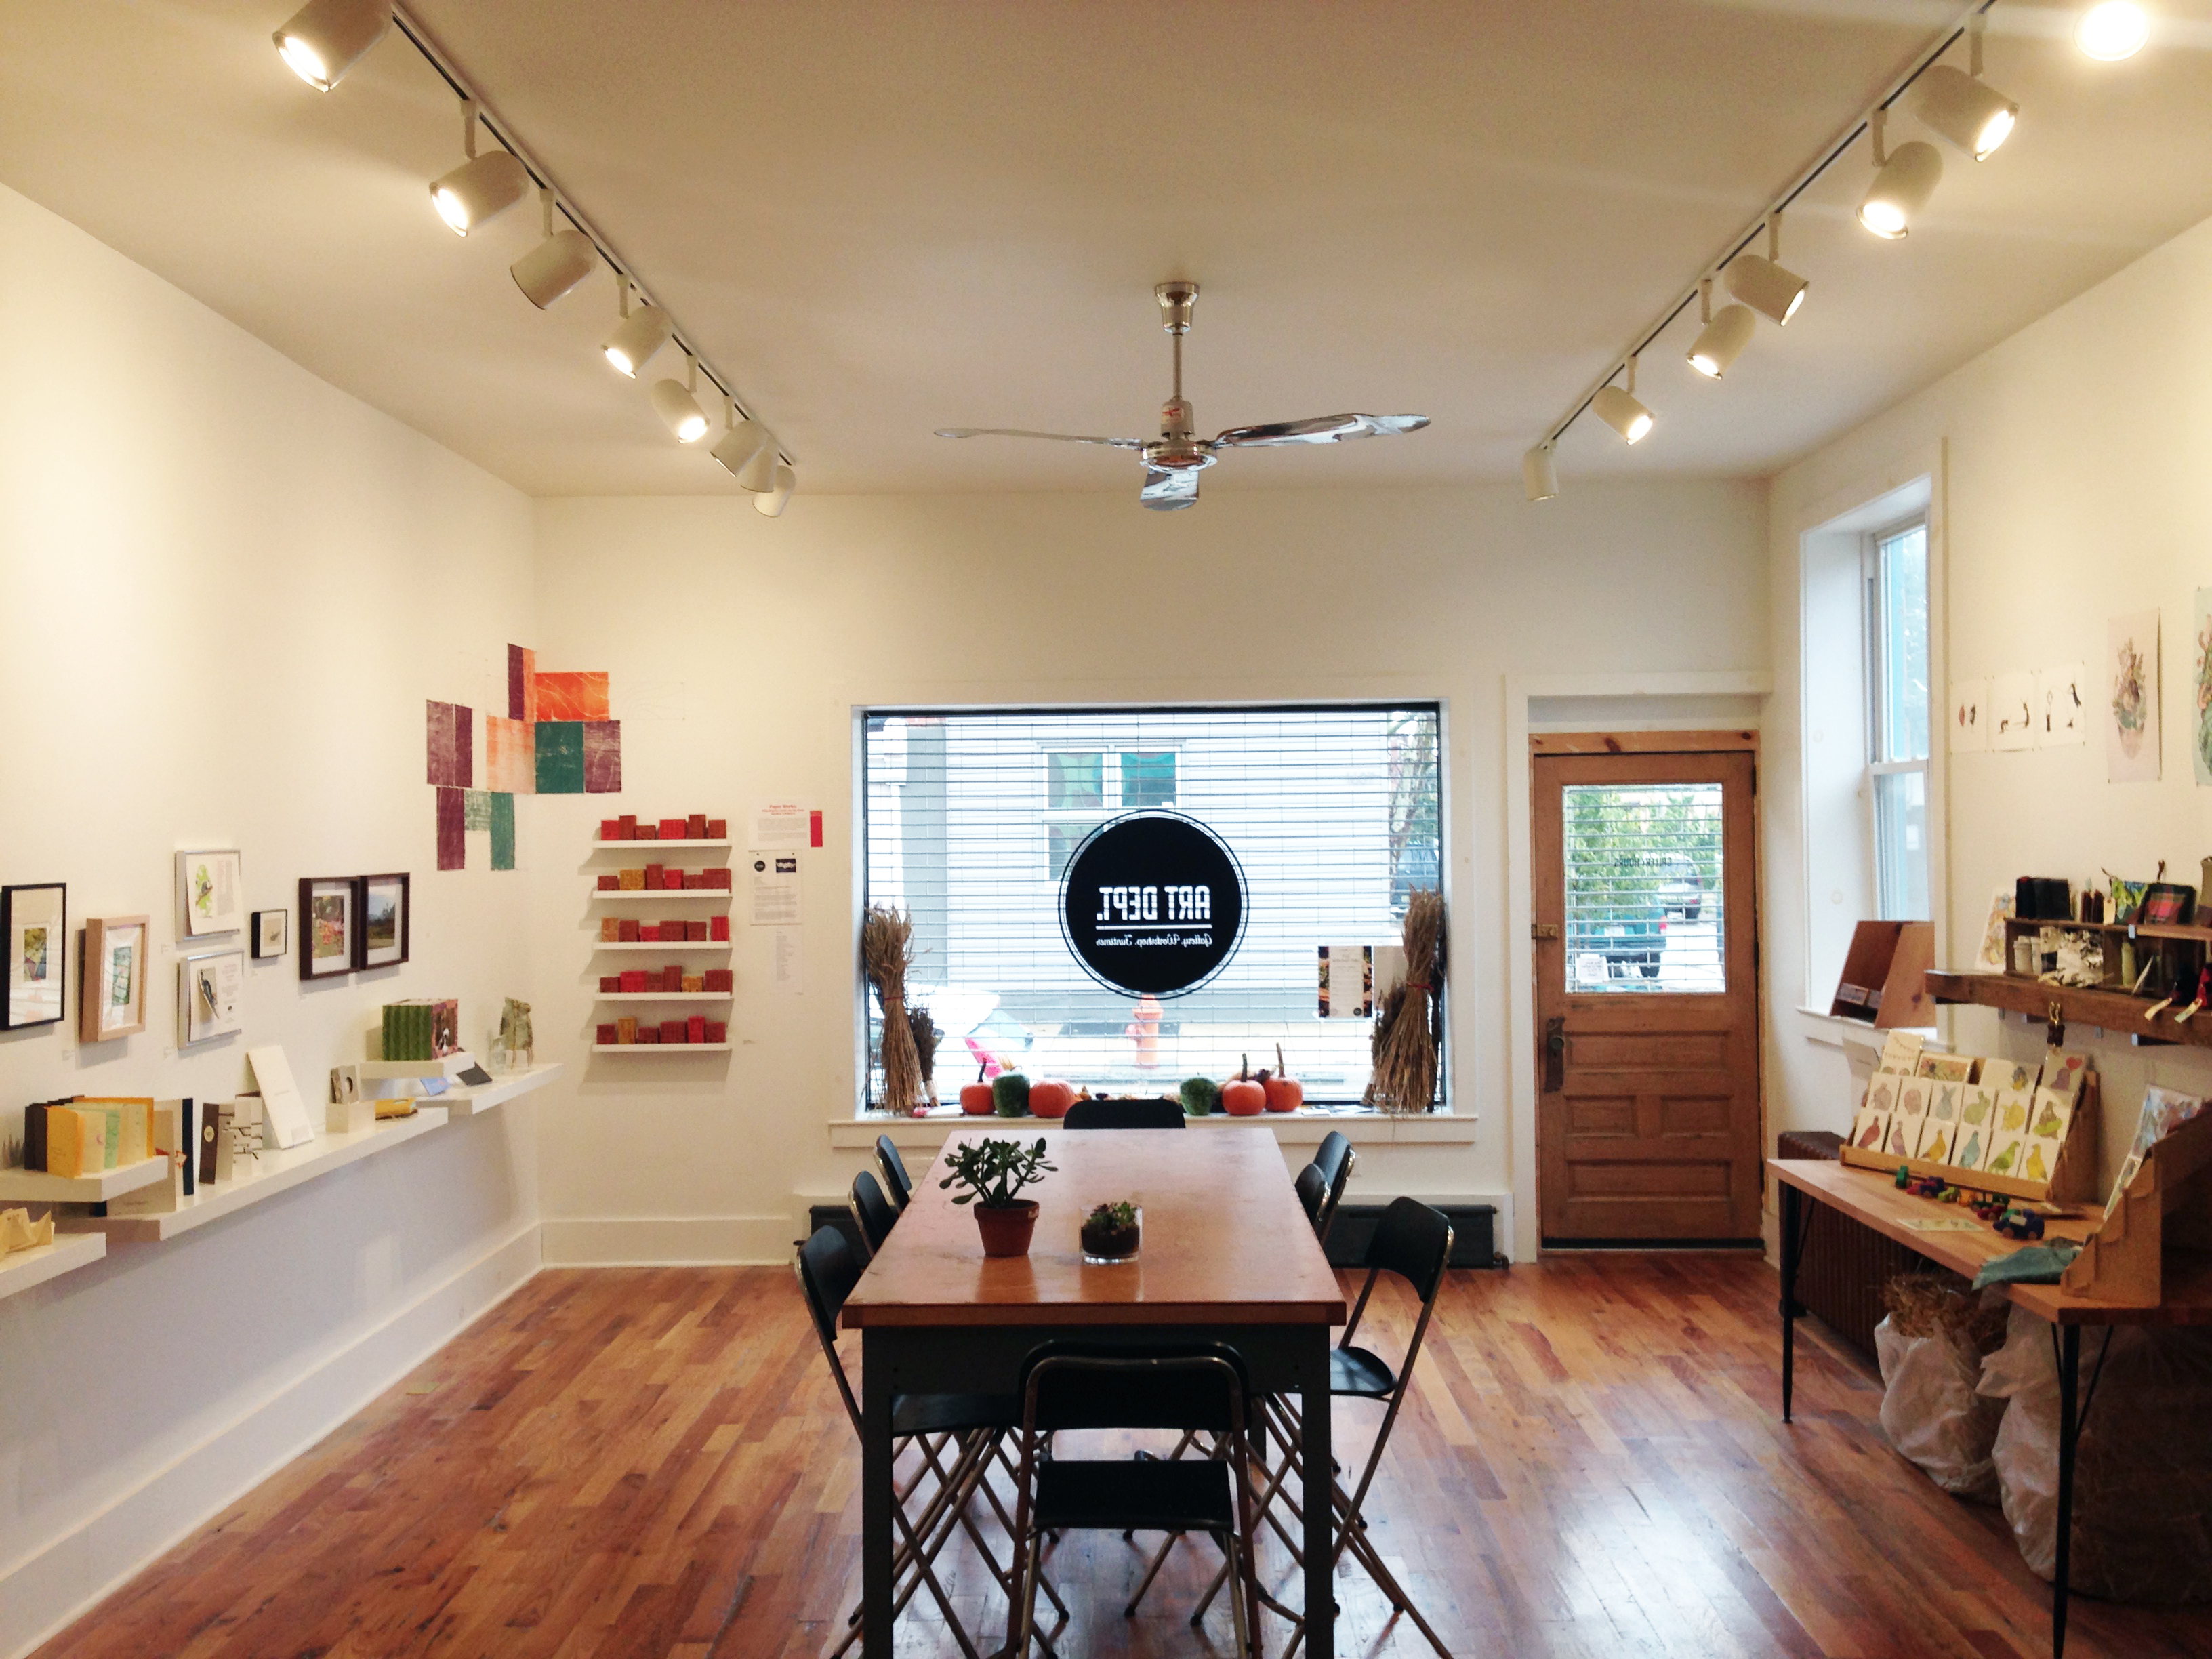 The Art Dept. Collective, located in Fishtown